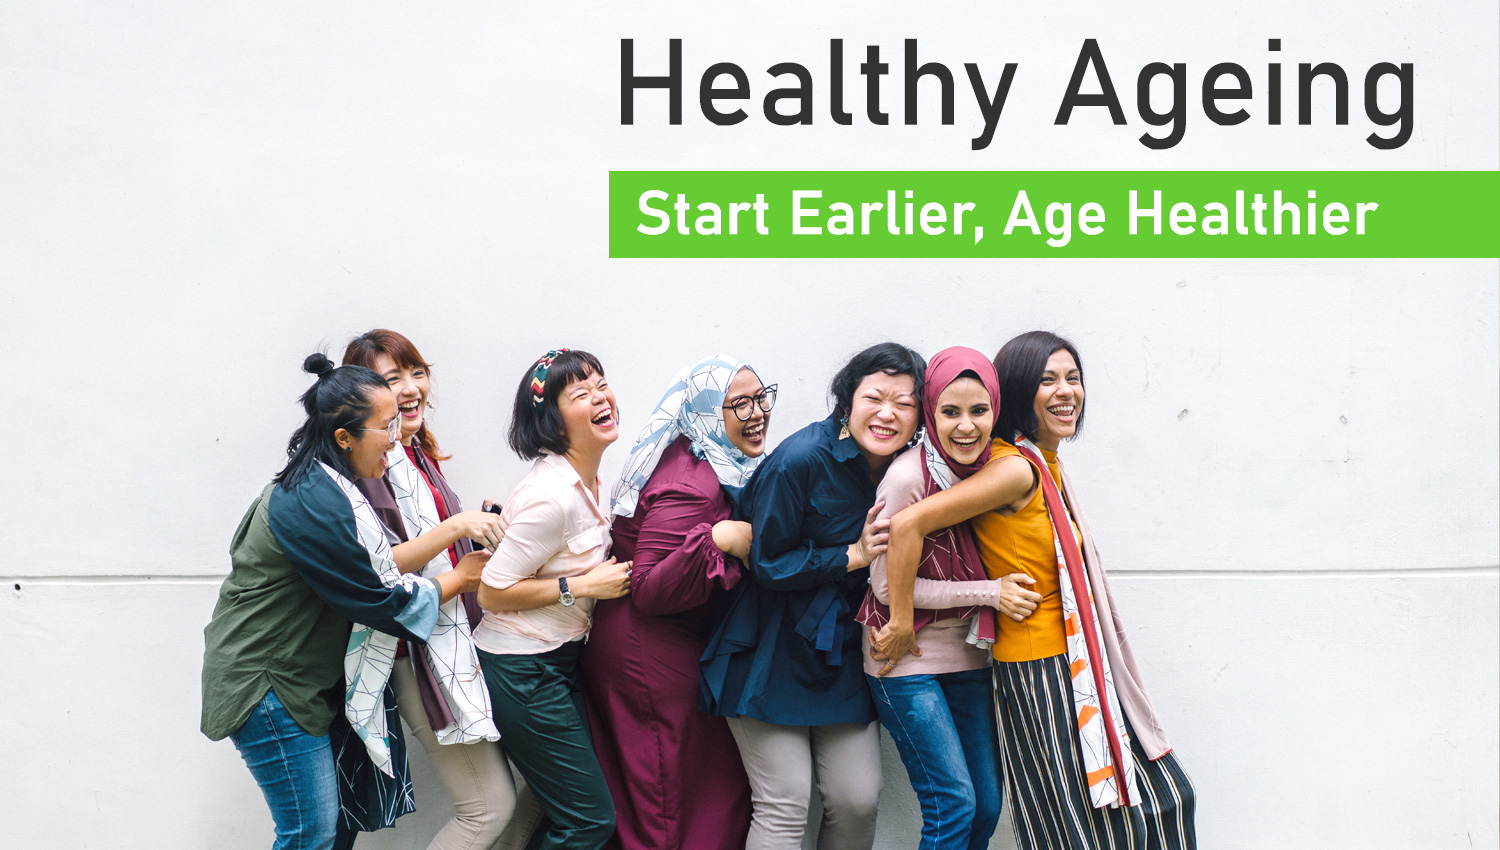 ACTIVE LIFESTYLER healthy-ageing-1 Start Earlier, Age Healthier